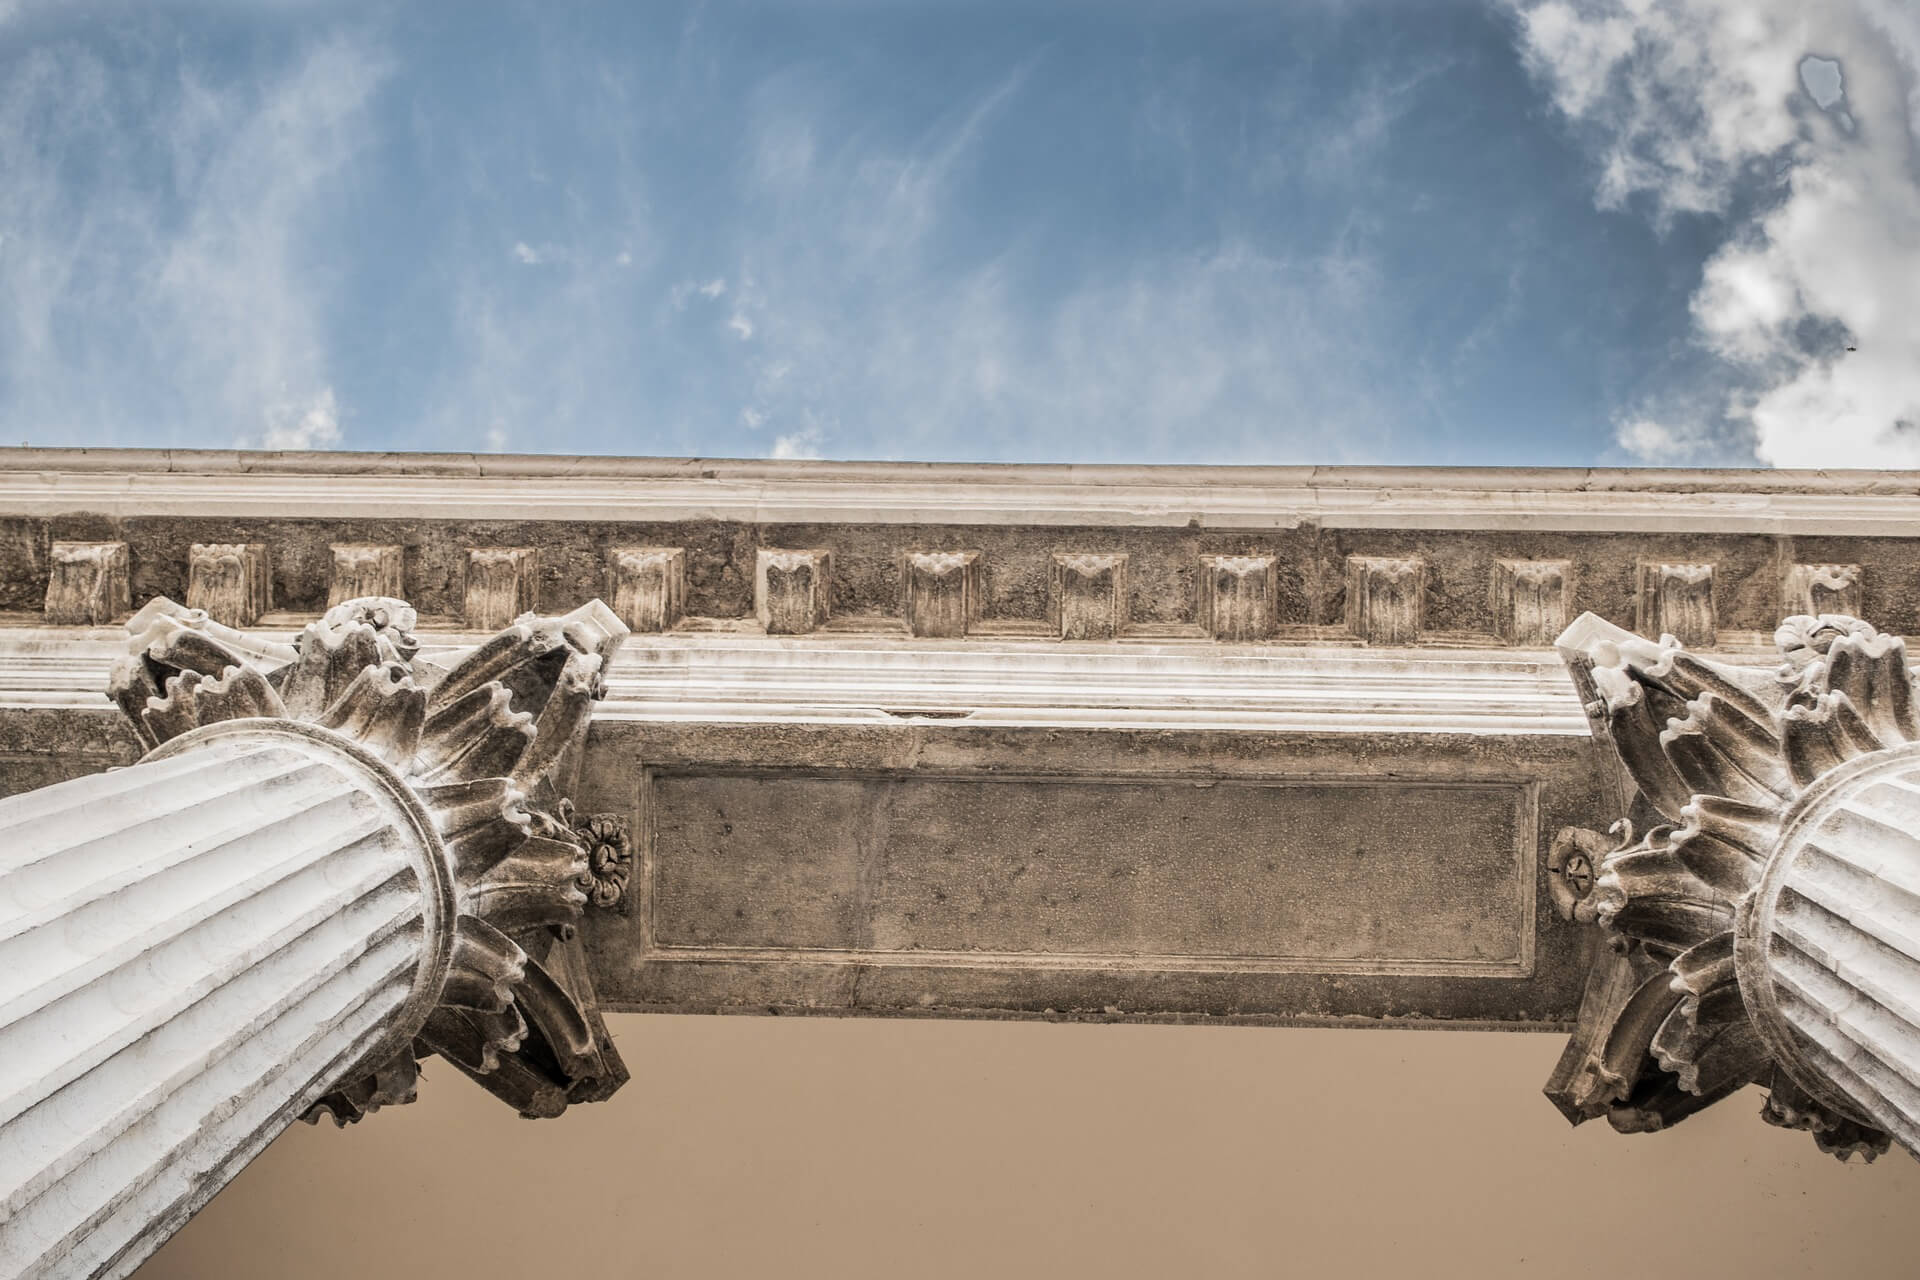 Worm's-eye view of a ionic-columned building with a partly cloudy sky in the background